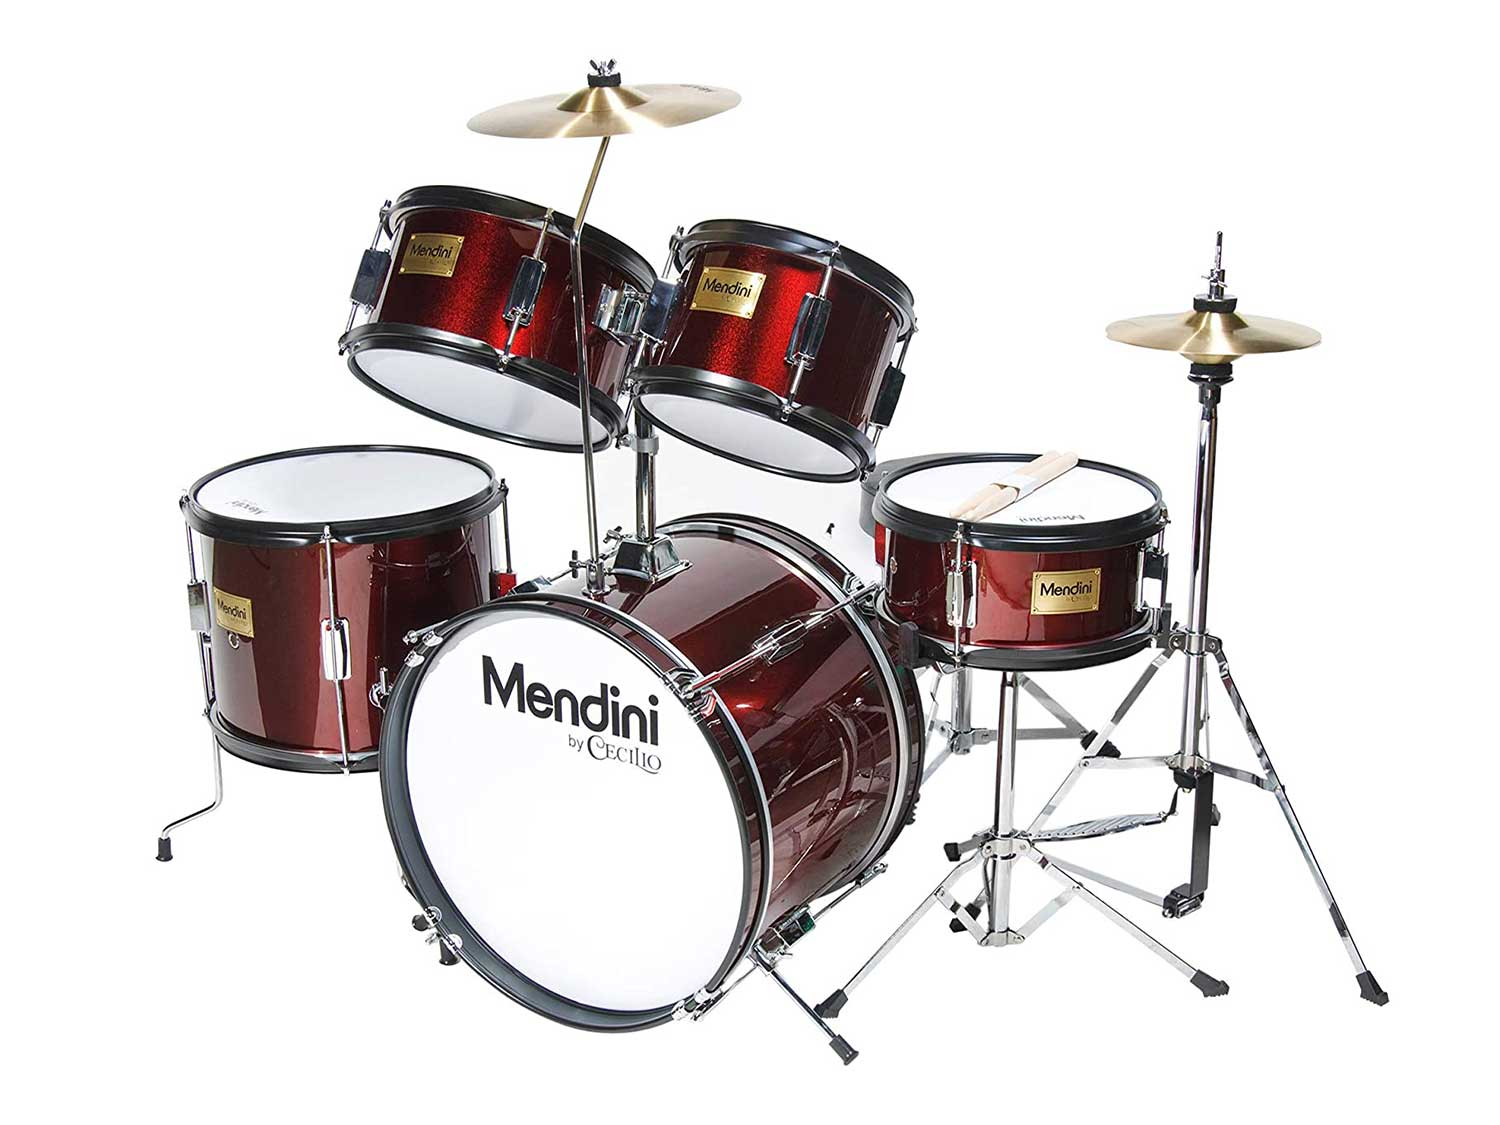 Mendini by Cecilio 16 inch 5-Piece Complete Kids/Junior Drum Set with Adjustable Throne, Cymbal, Pedal & Drumsticks, Metallic Wine Red, MJDS-5-WR